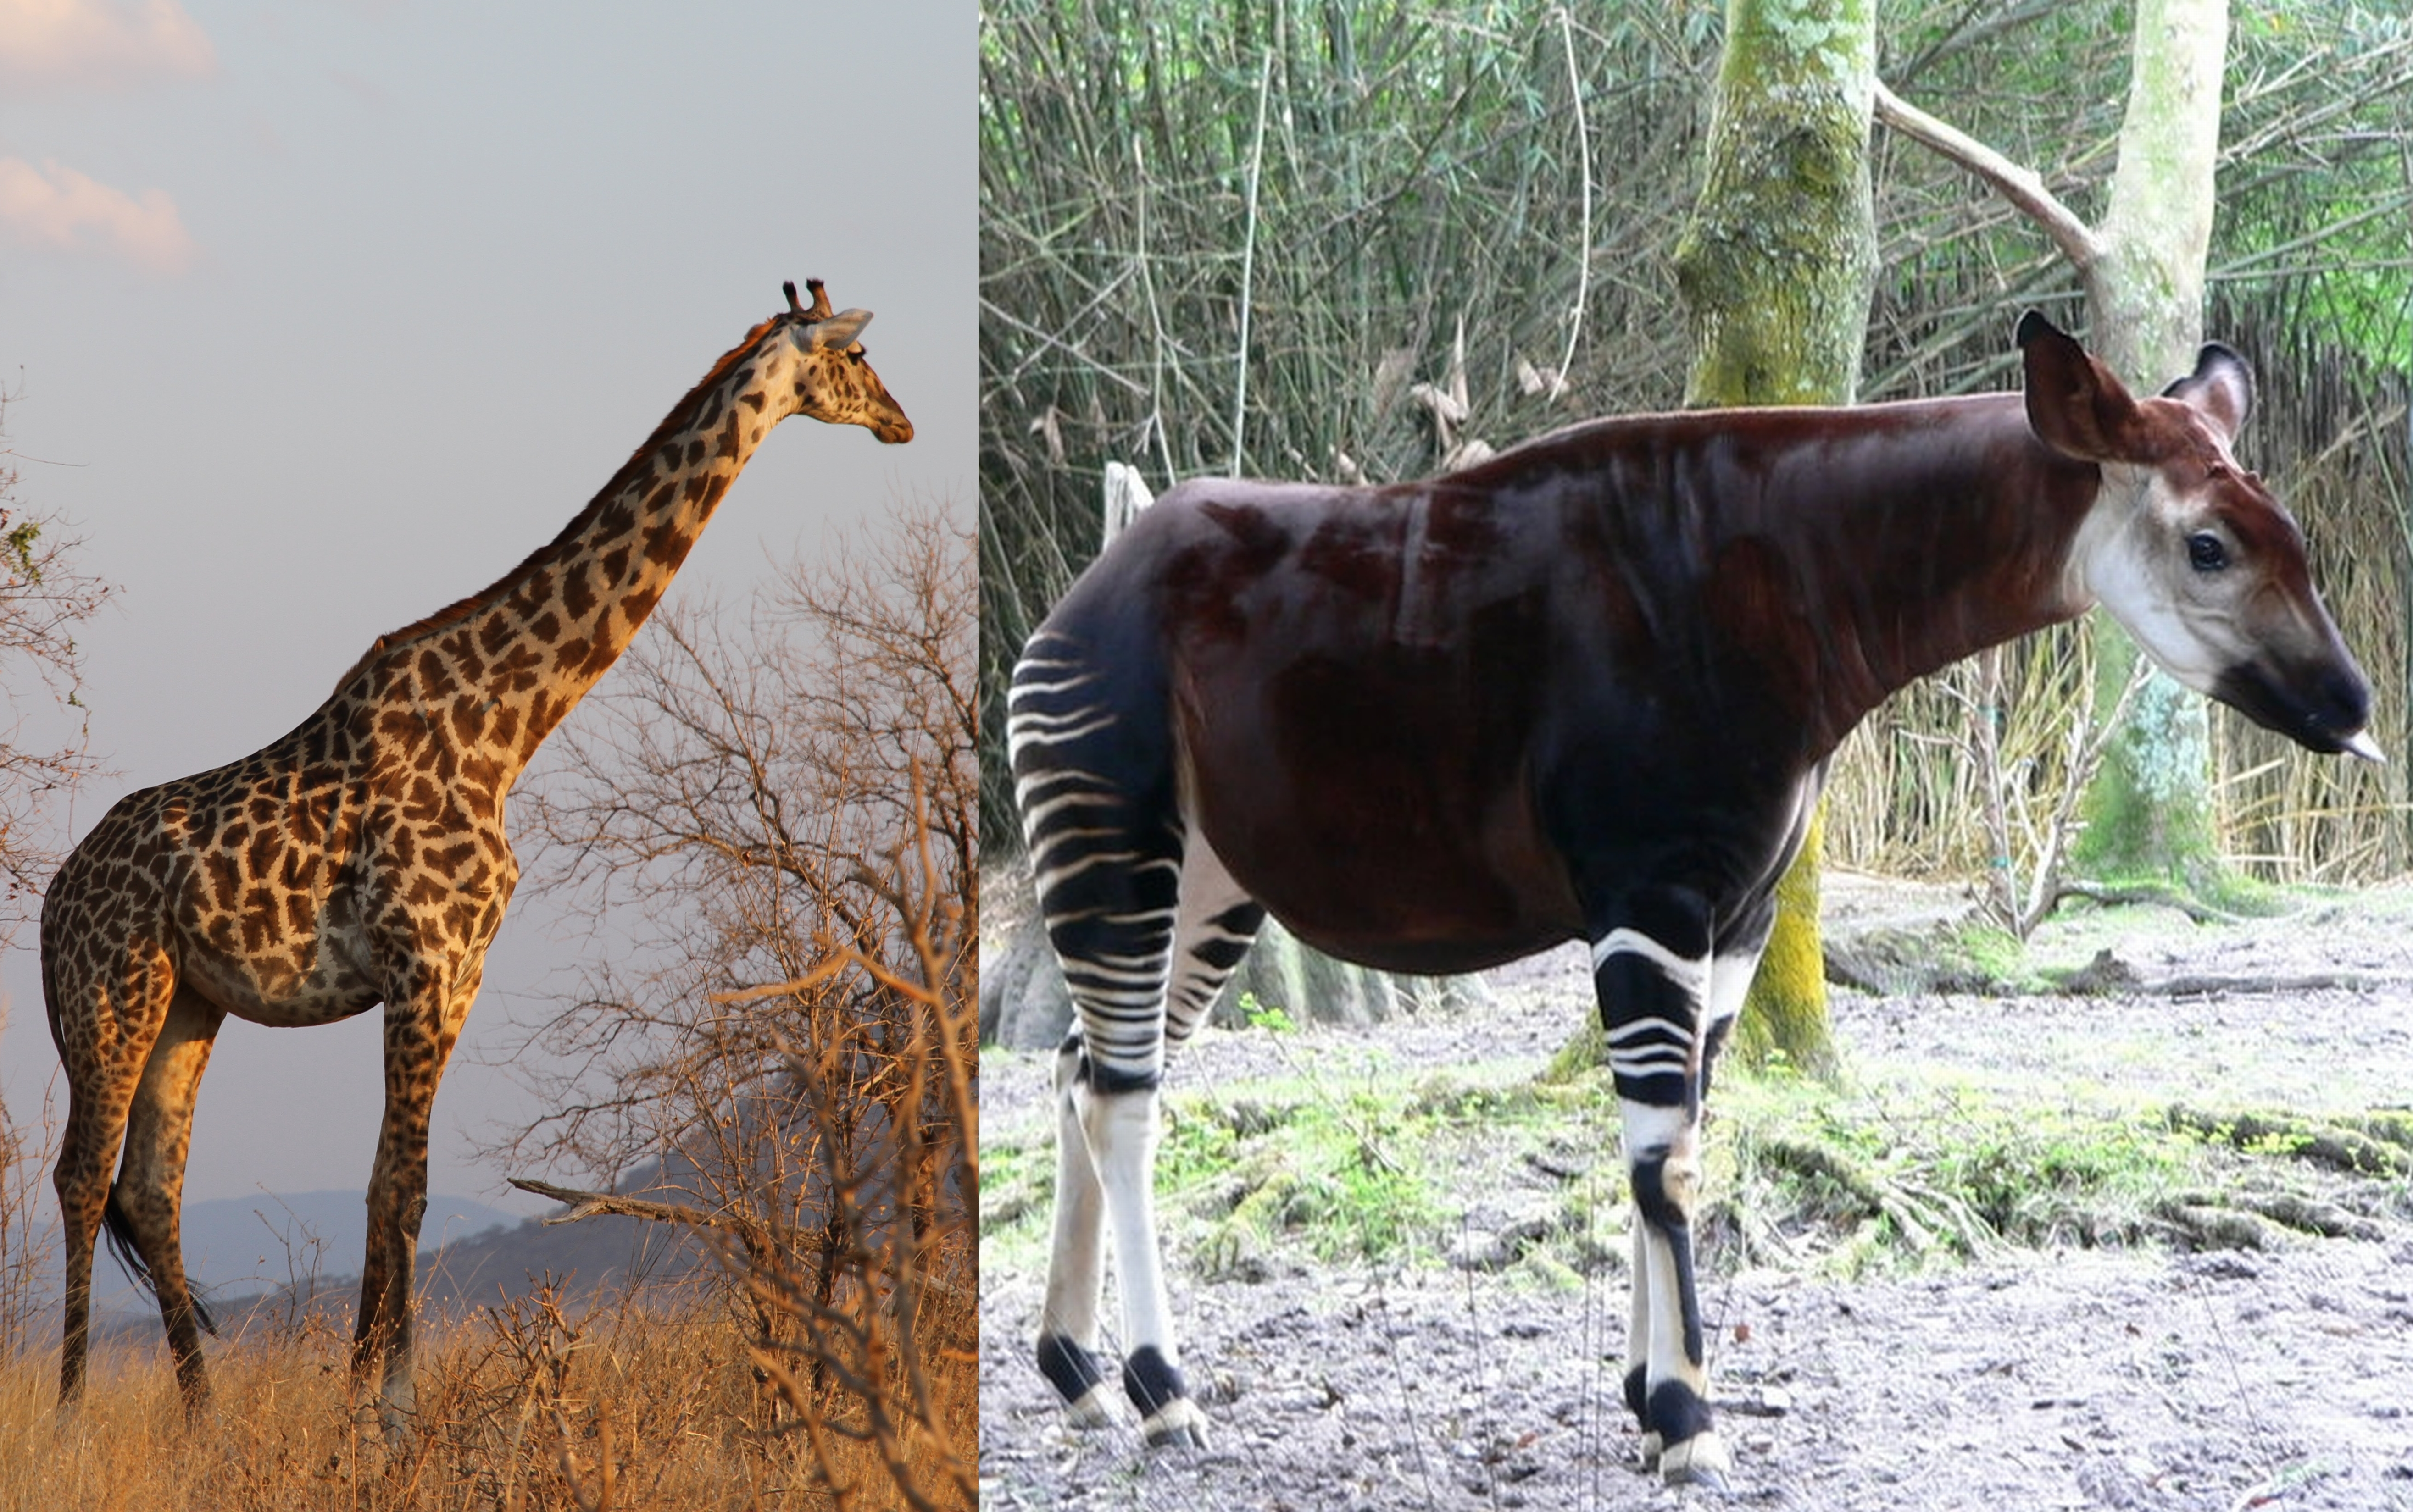 Giraffe Okapi Genomes Reveal Clues To Height Other Differences